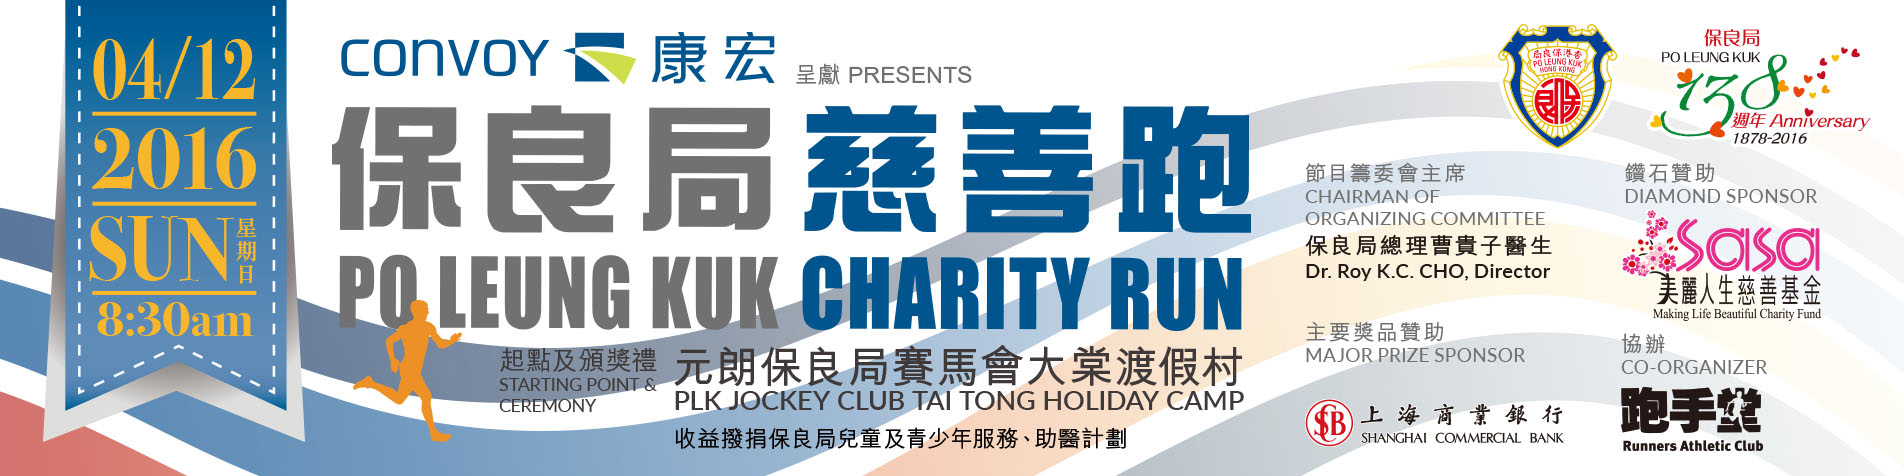 Po Leung Kuk Charity Run 2016